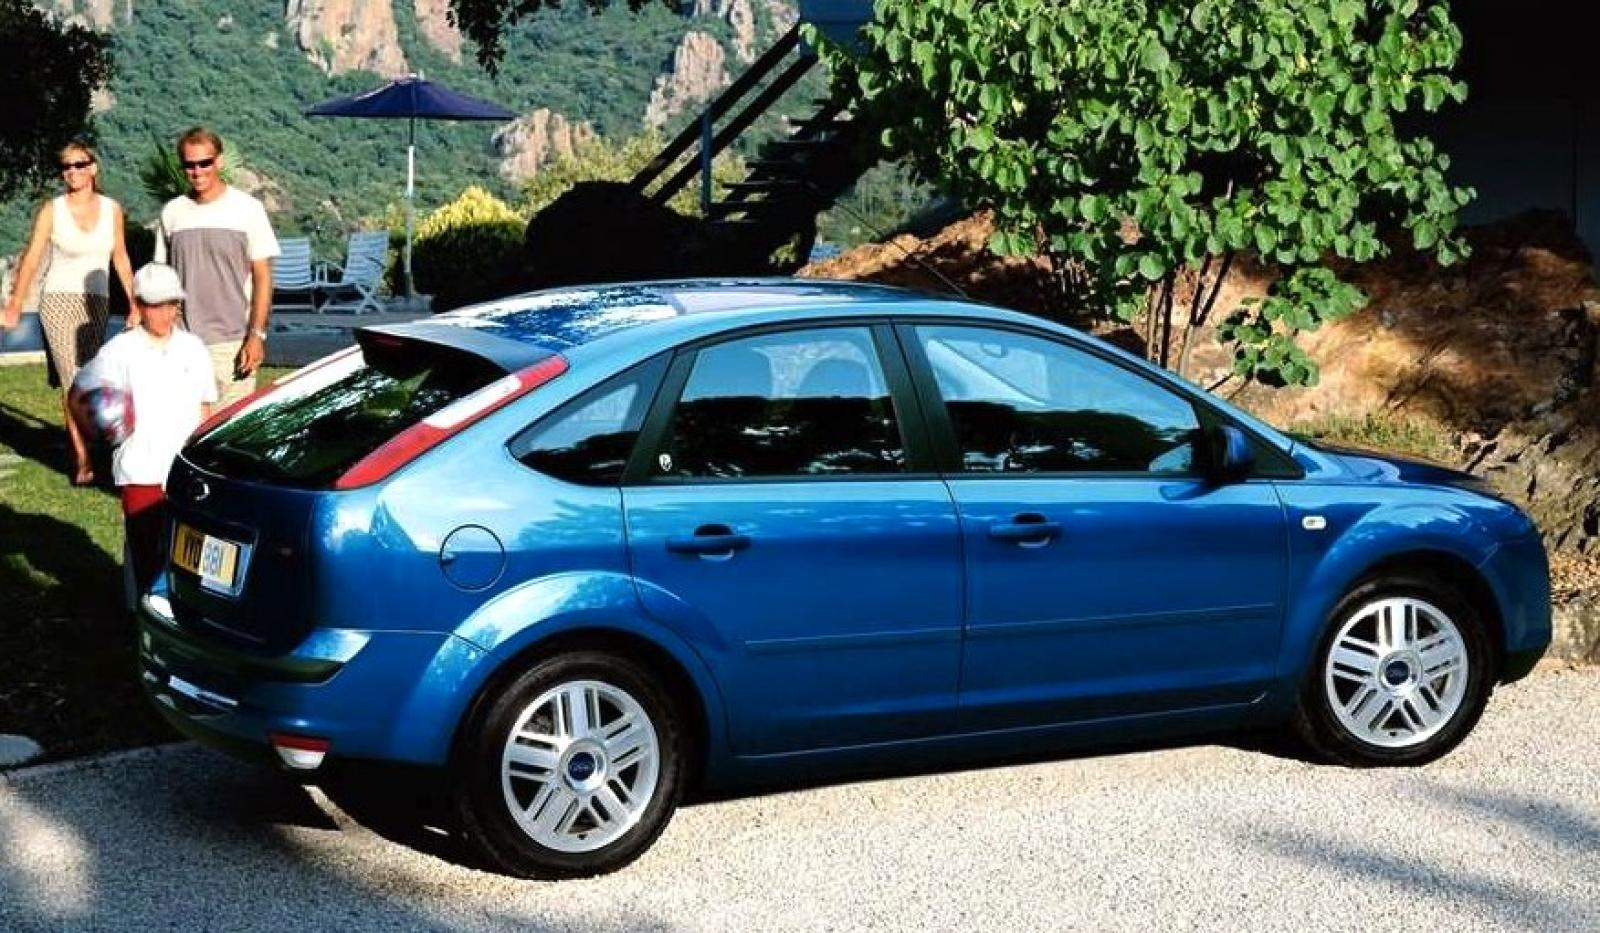 2006 ford focus information and photos zombiedrive. Black Bedroom Furniture Sets. Home Design Ideas